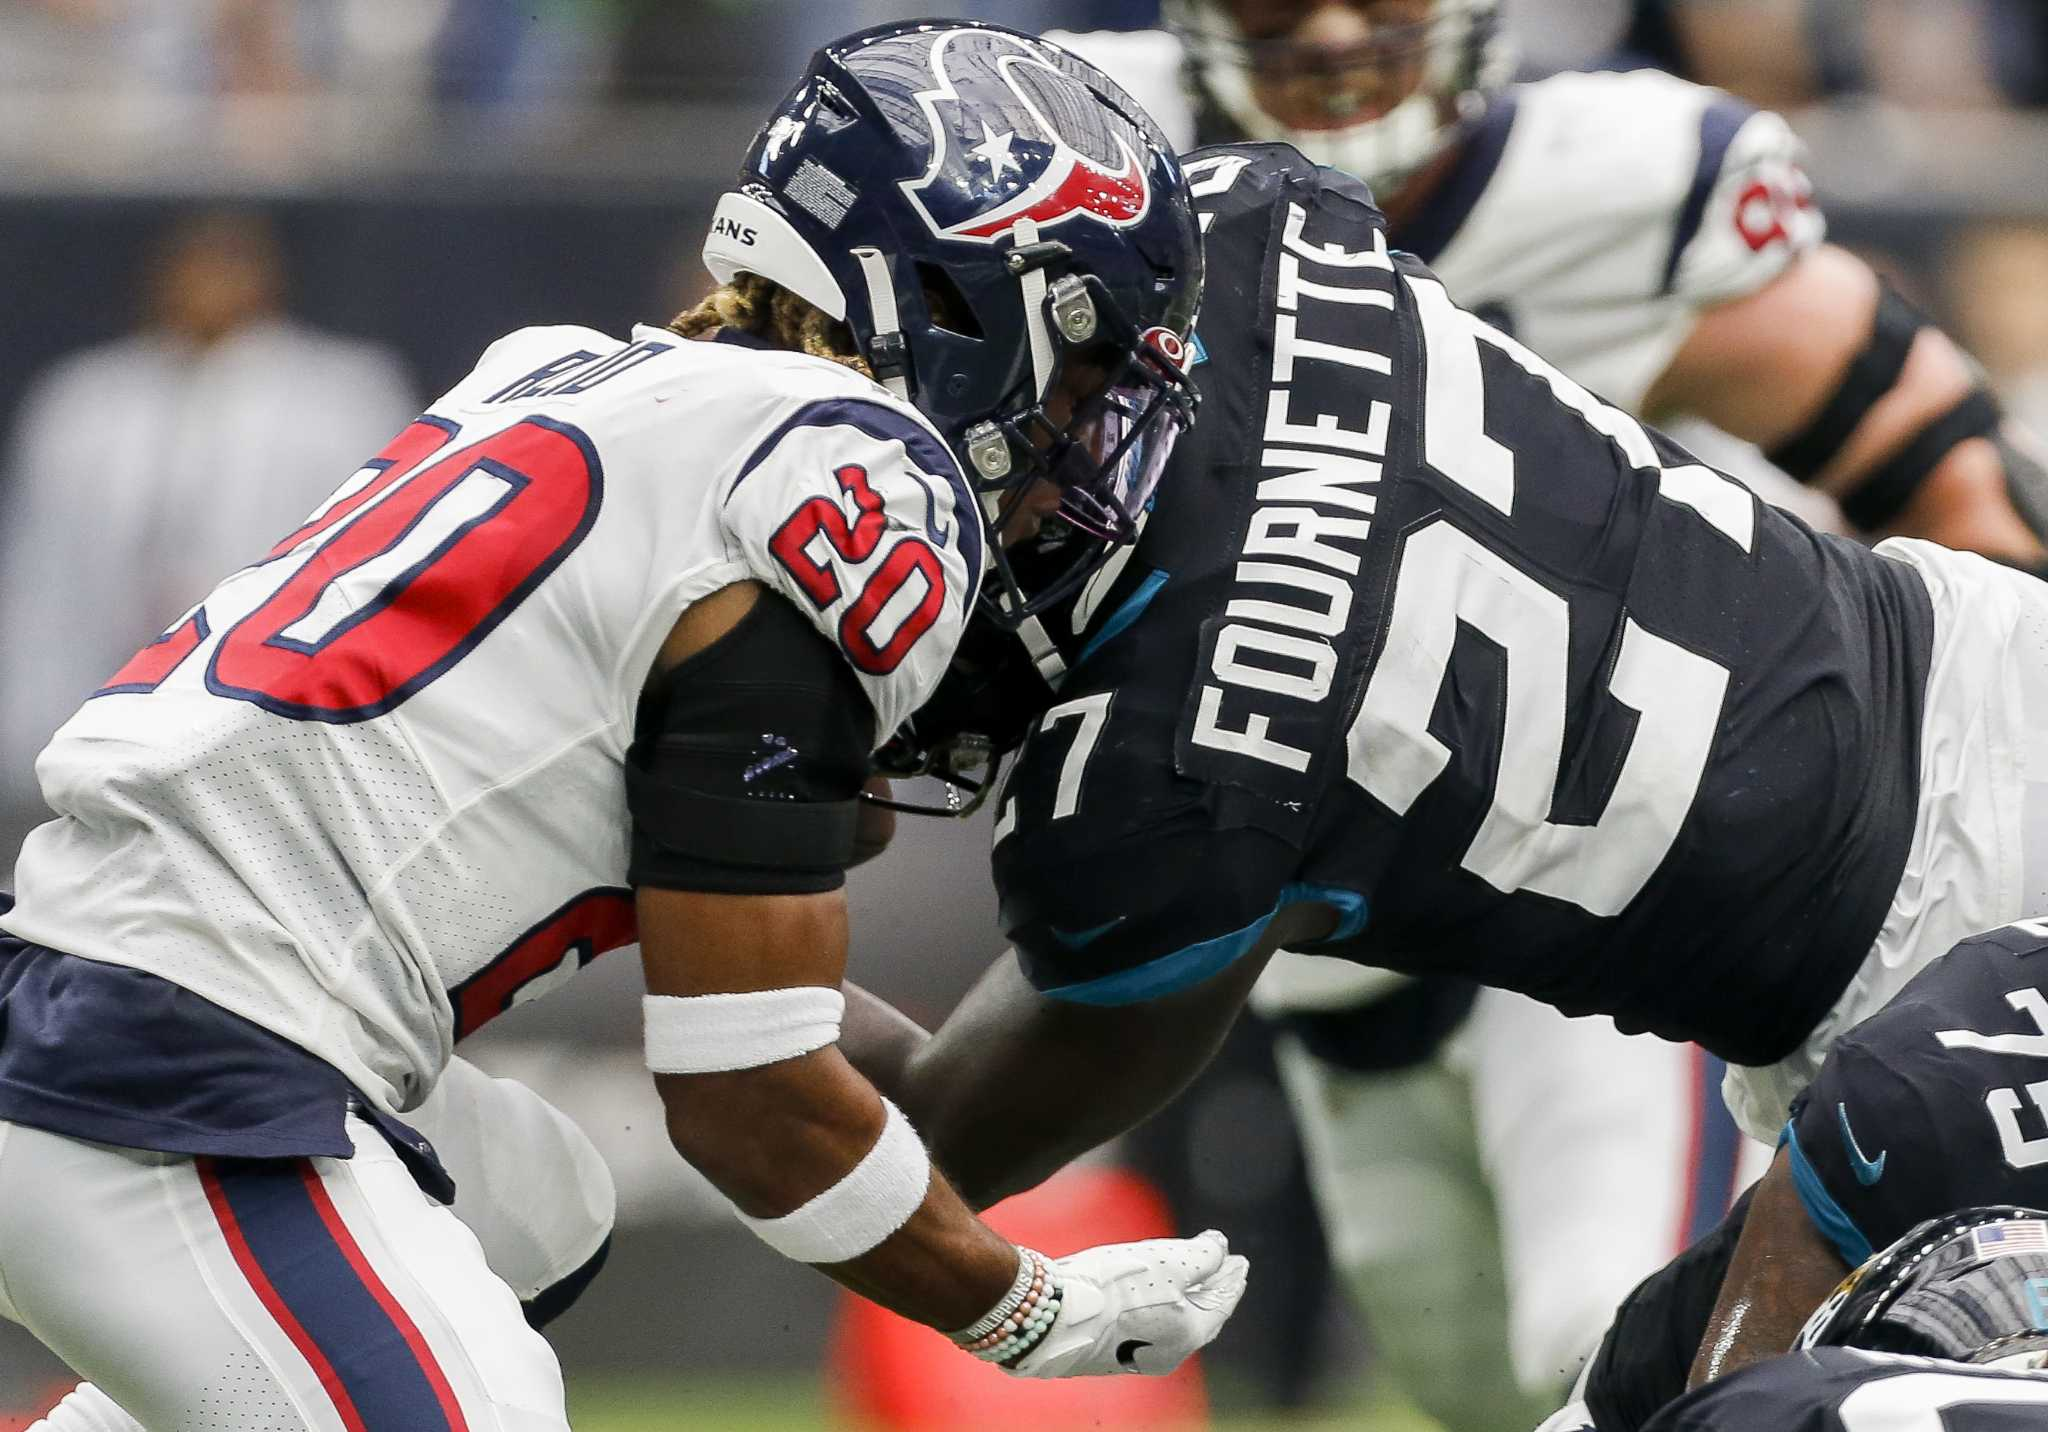 Texans turning point: Jaguars denied on 2-point conversion